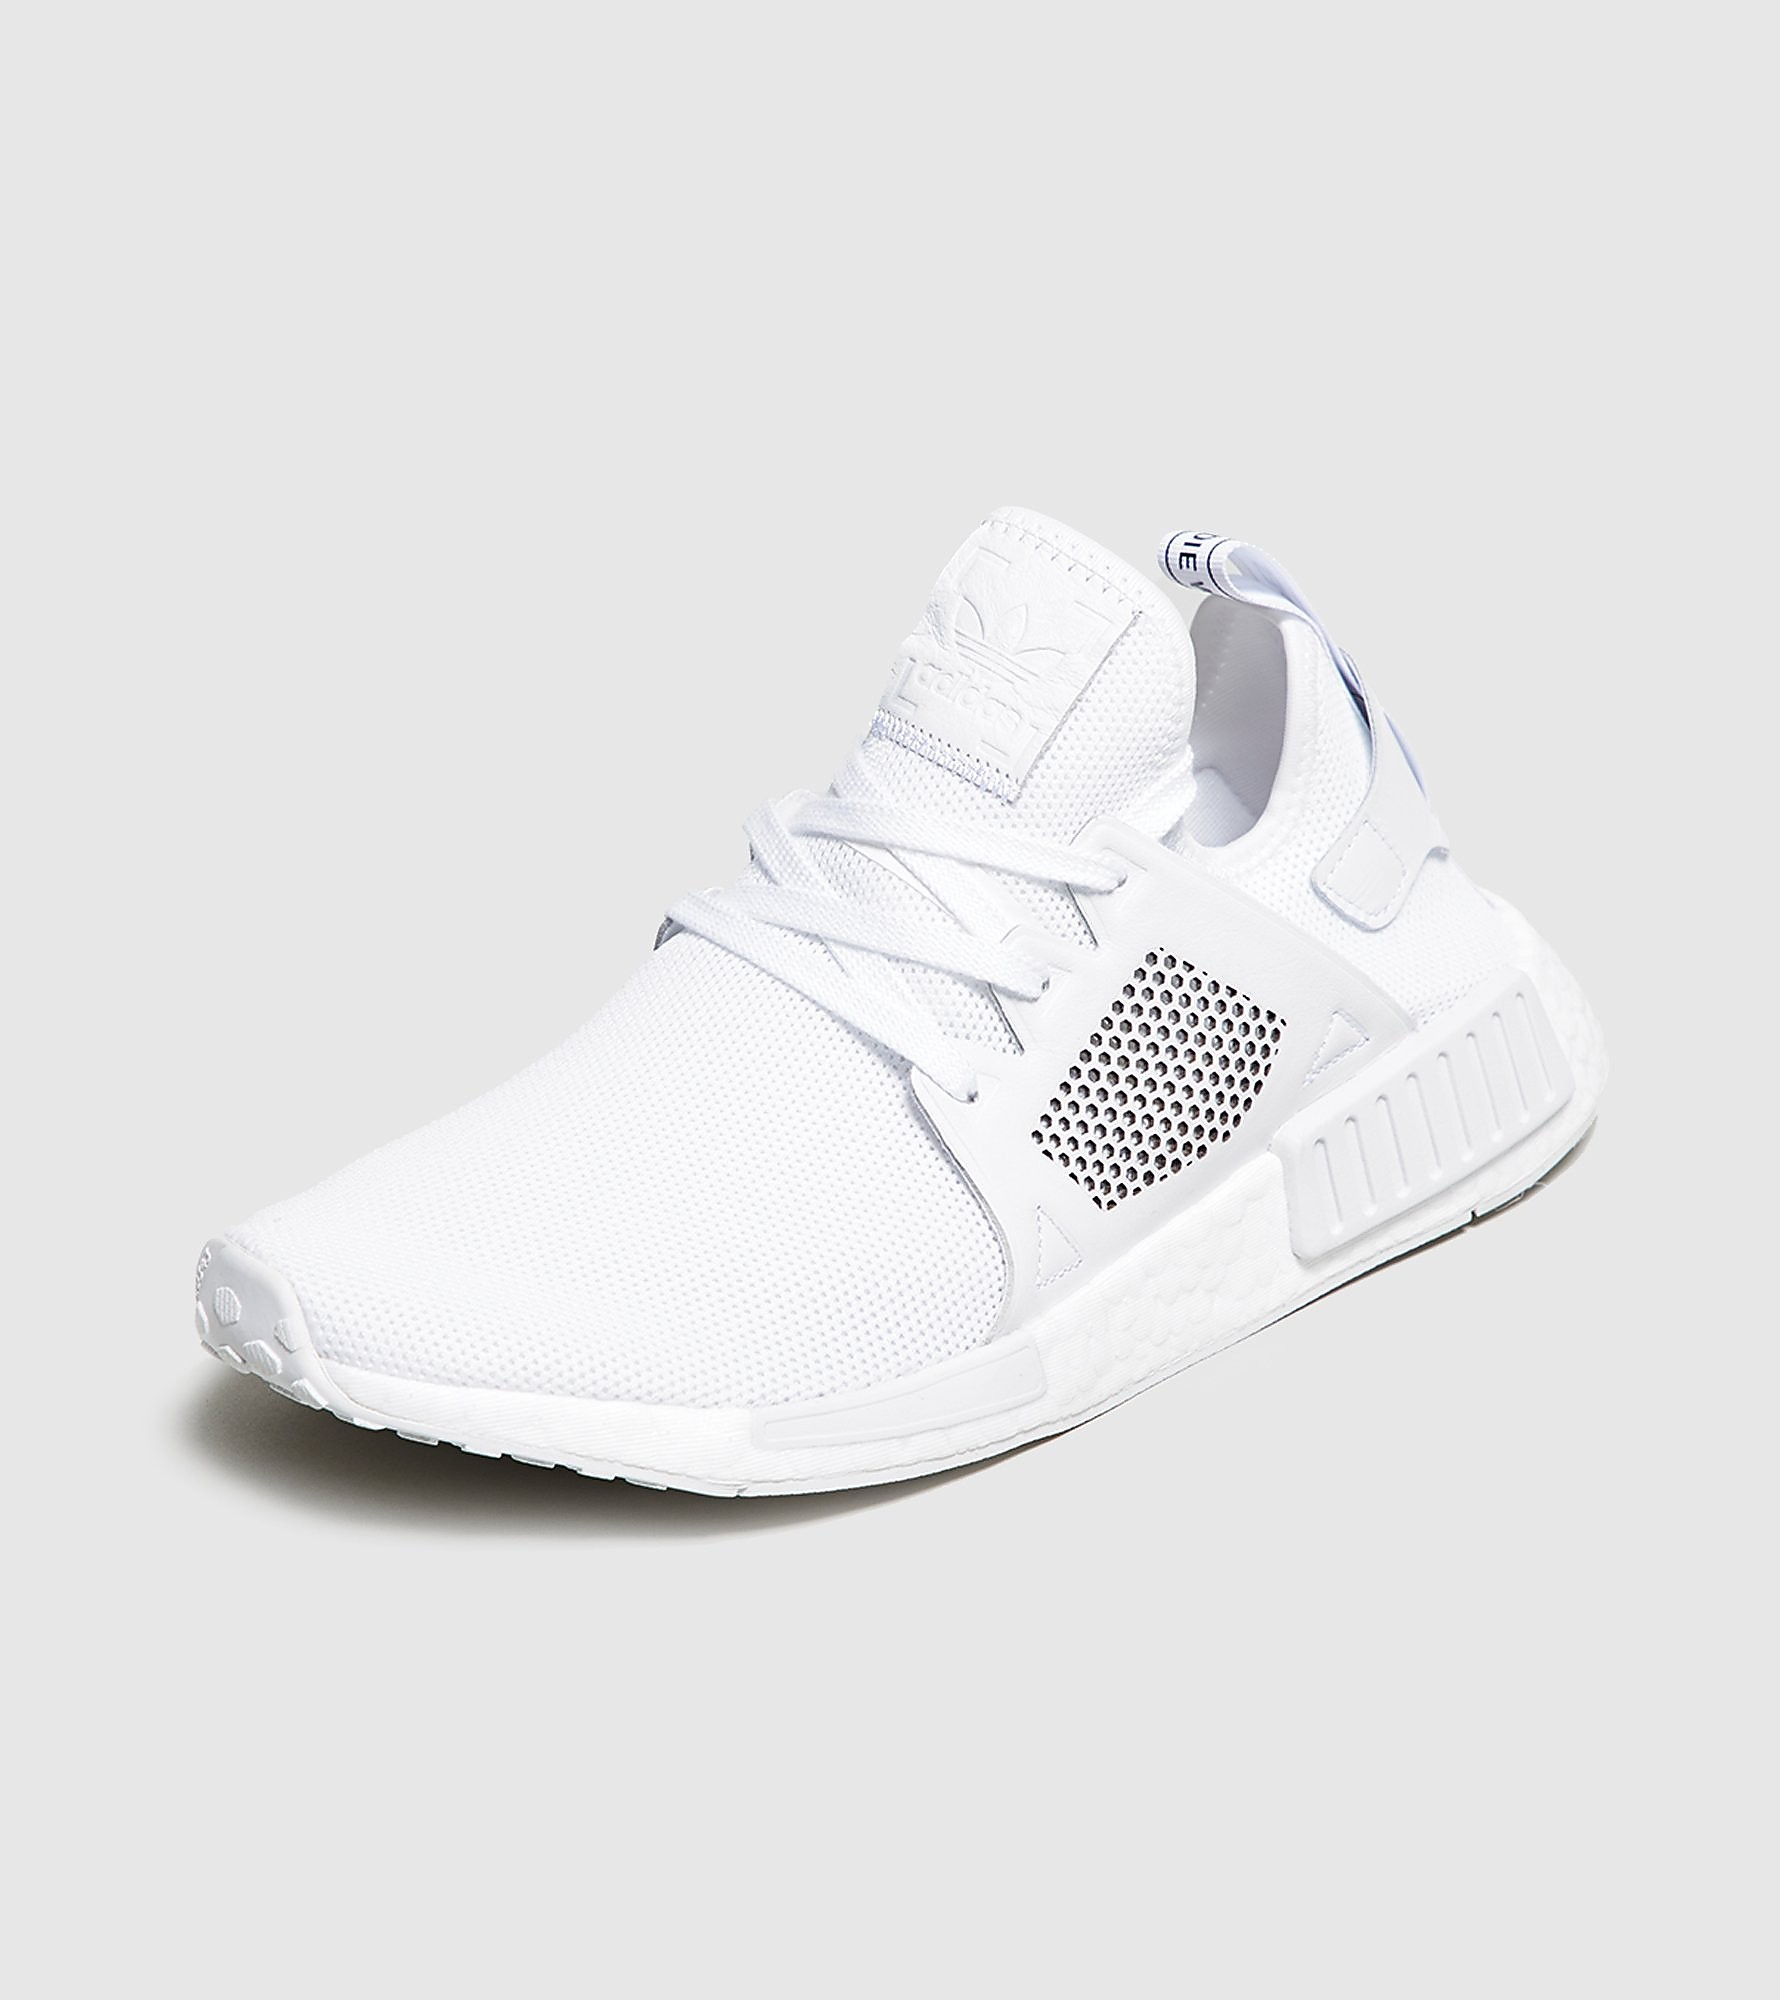 adidas Originals NMD XR1